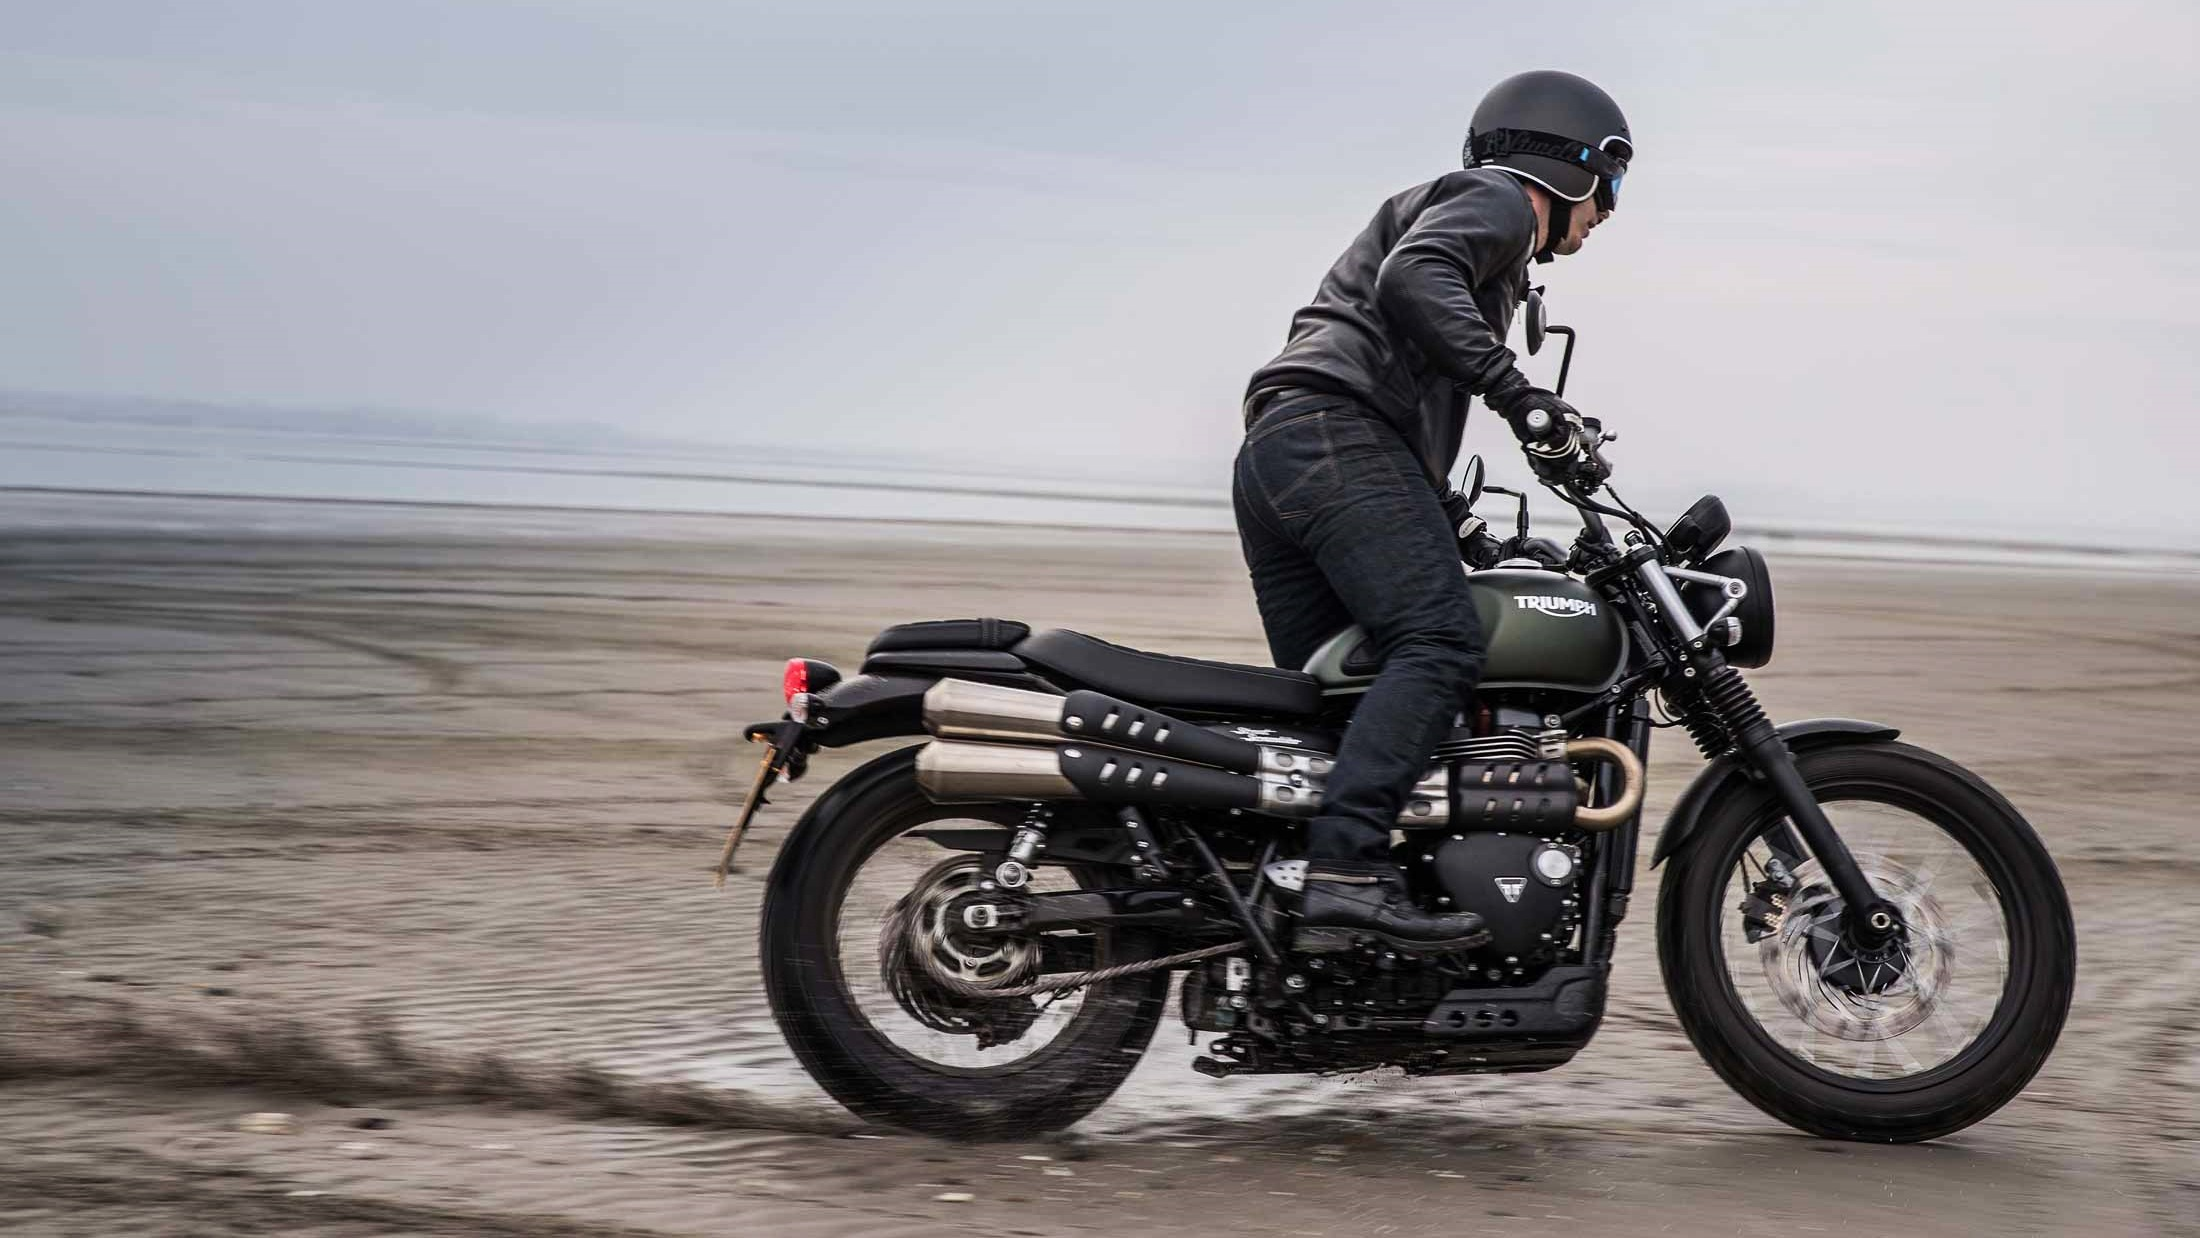 2017 triumph street scrambler launched at rs lakhs iamabiker. Black Bedroom Furniture Sets. Home Design Ideas